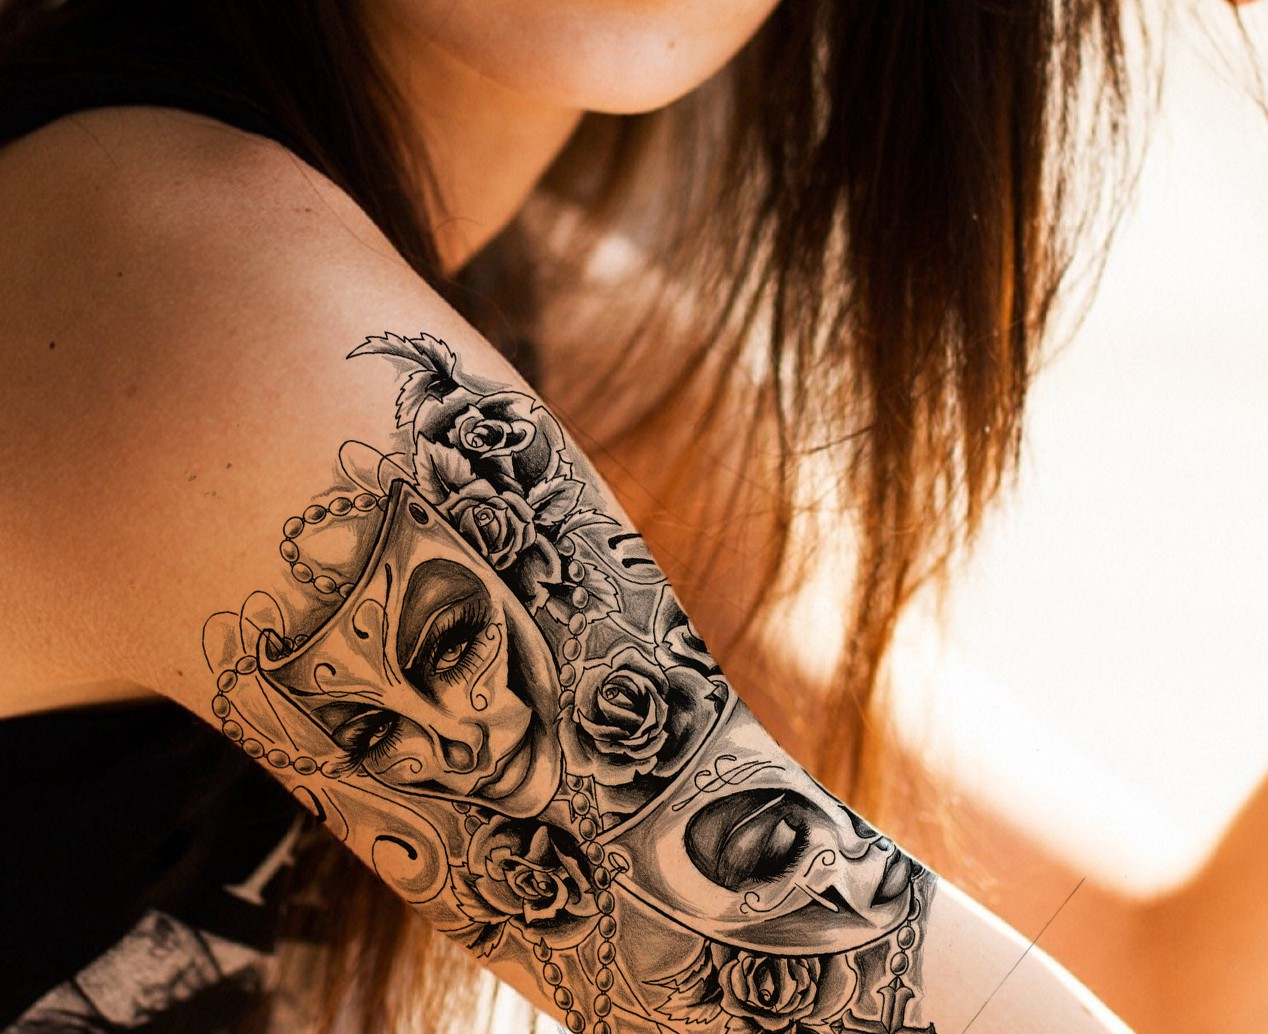 Mask With Roses Tattoo For Girl On Right Shoulder Tattoo throughout sizing 1268 X 1034